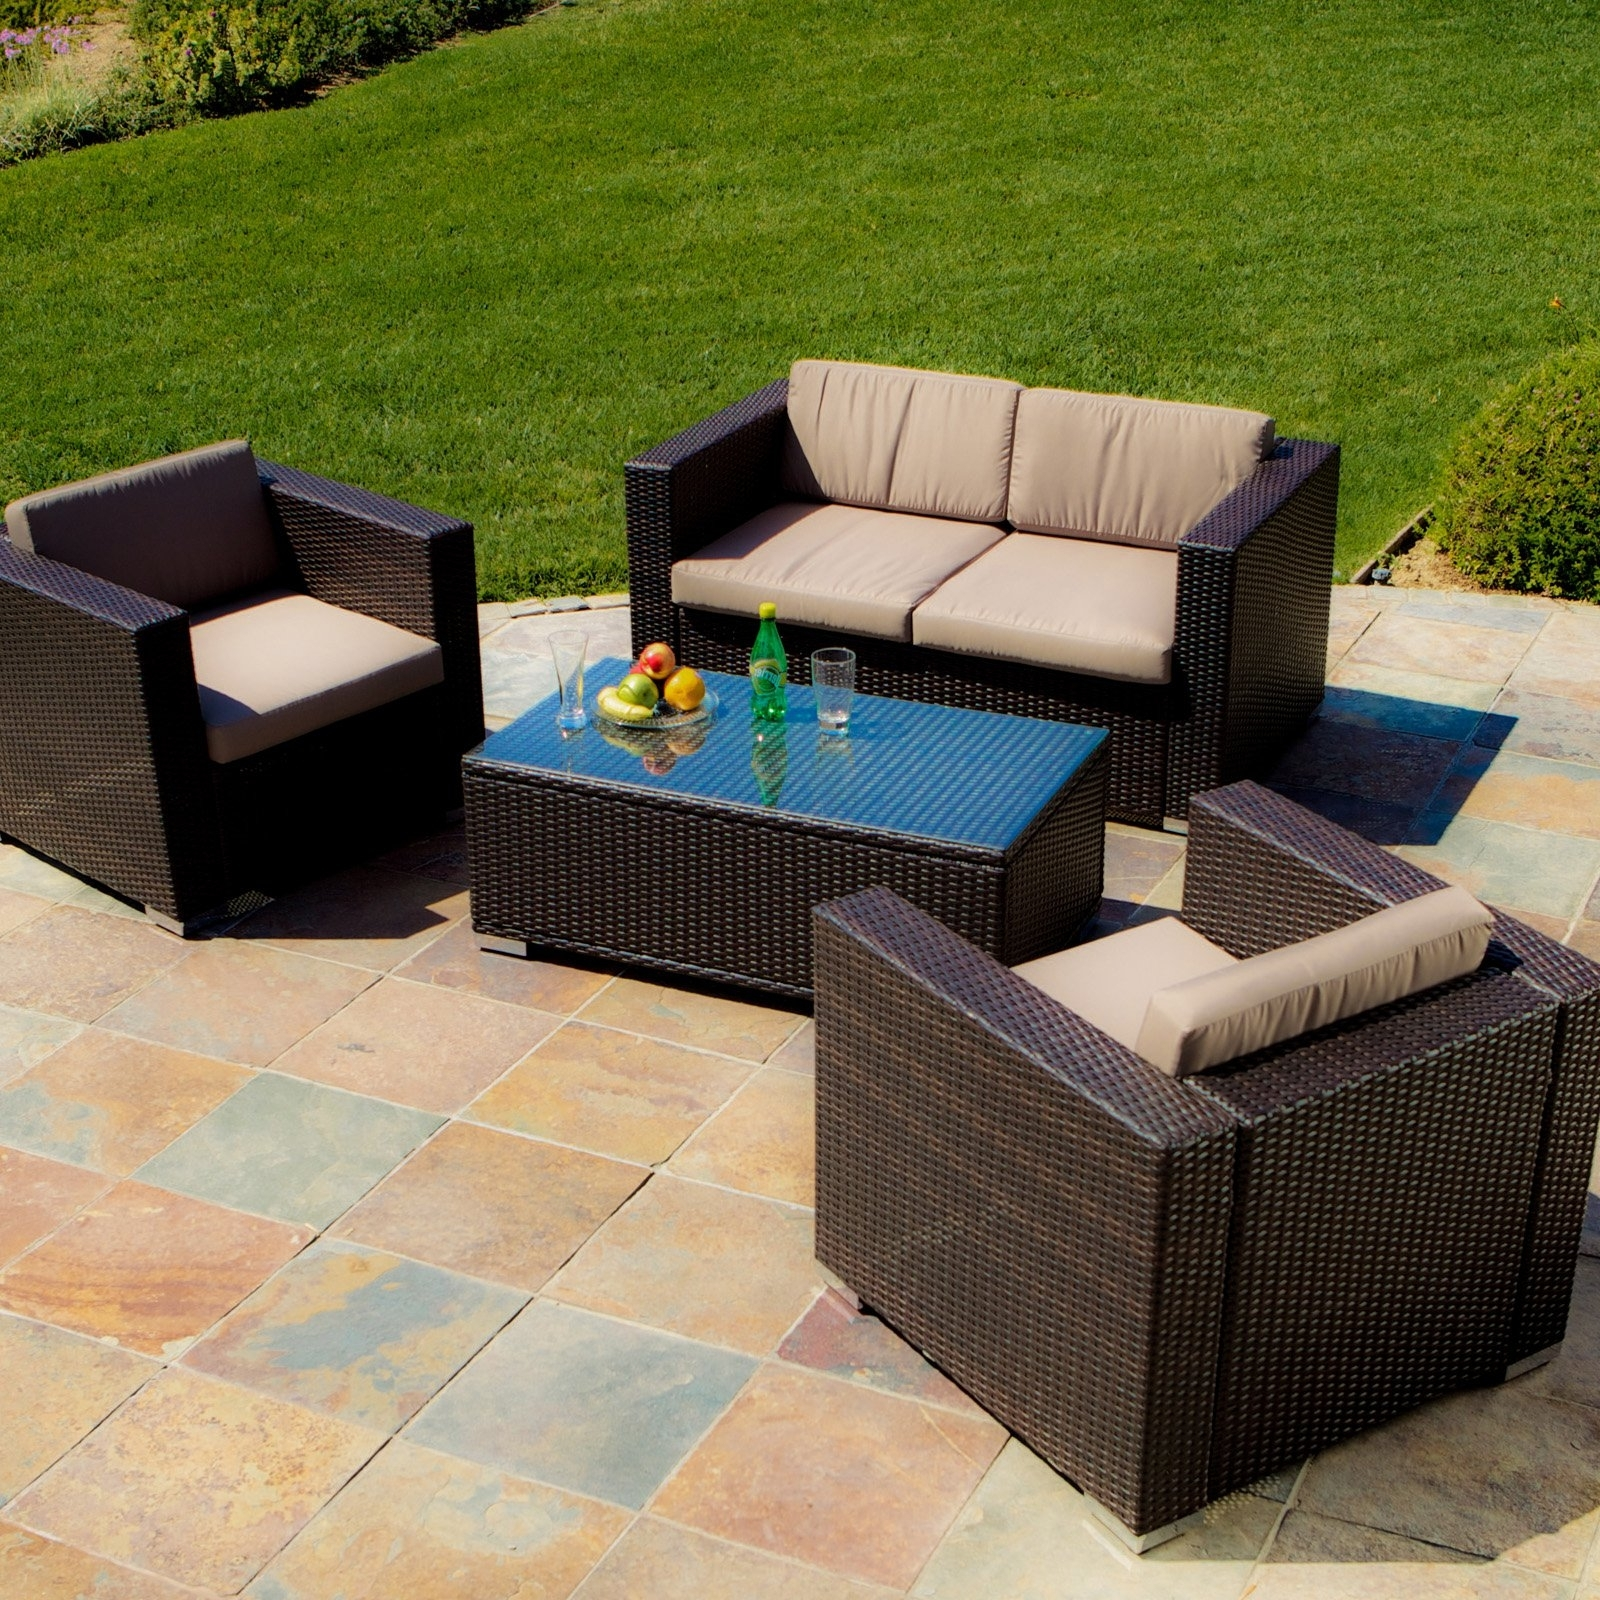 2019 Patio Conversation Sets Without Cushions For Patio Furniture All Weatheratio Coversall Without Cushions Wicker No (View 2 of 20)